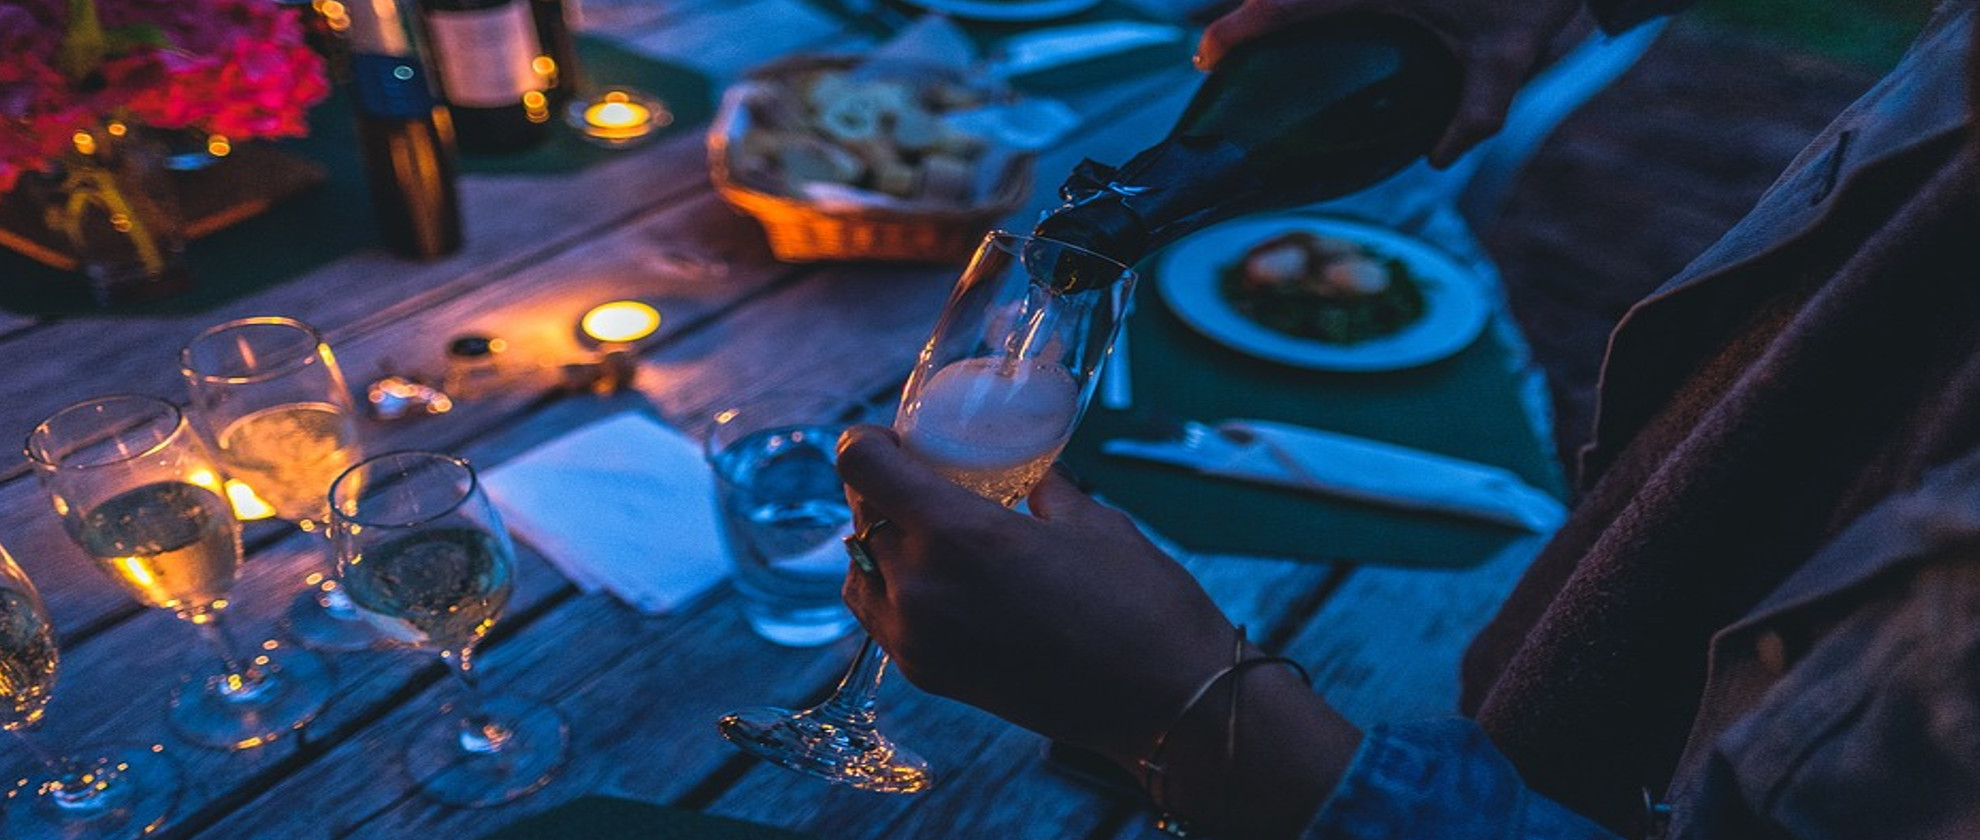 5 Most Romantic Places to Wine and Dine in London